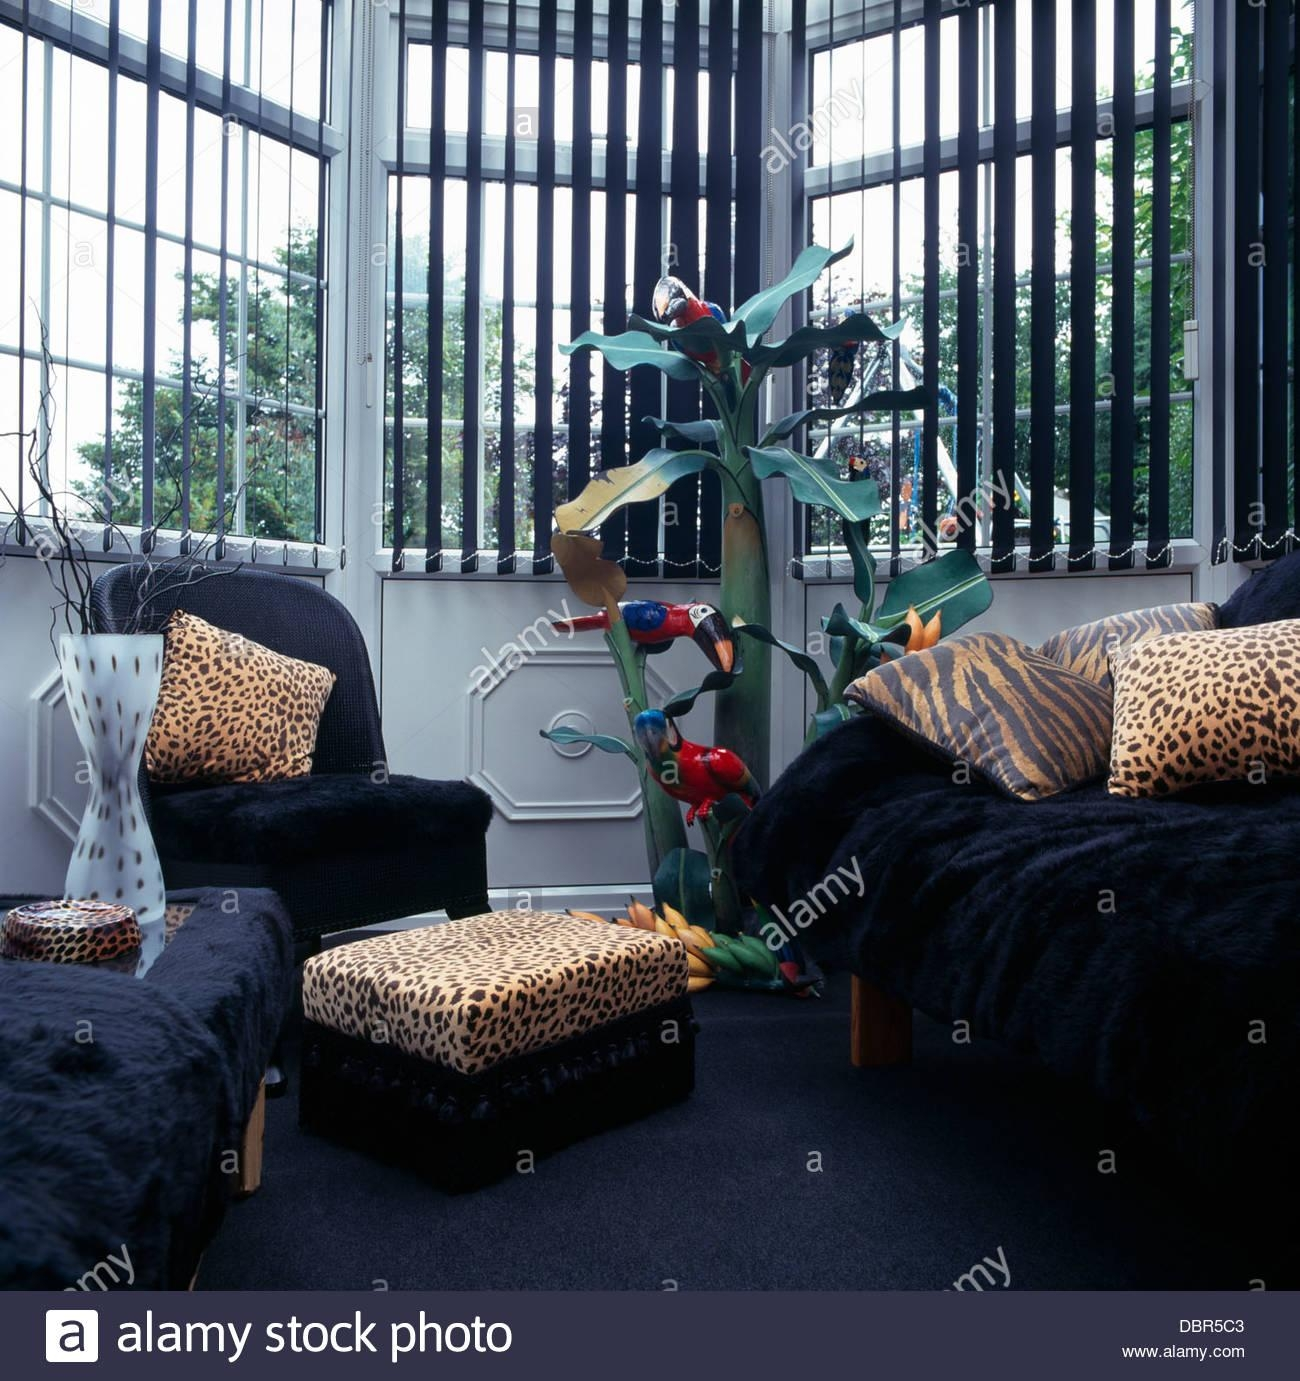 Animal Print Cushions On Black Armchairs And Sofa In Front Of Pertaining To Animal Print Sofas (Image 4 of 20)